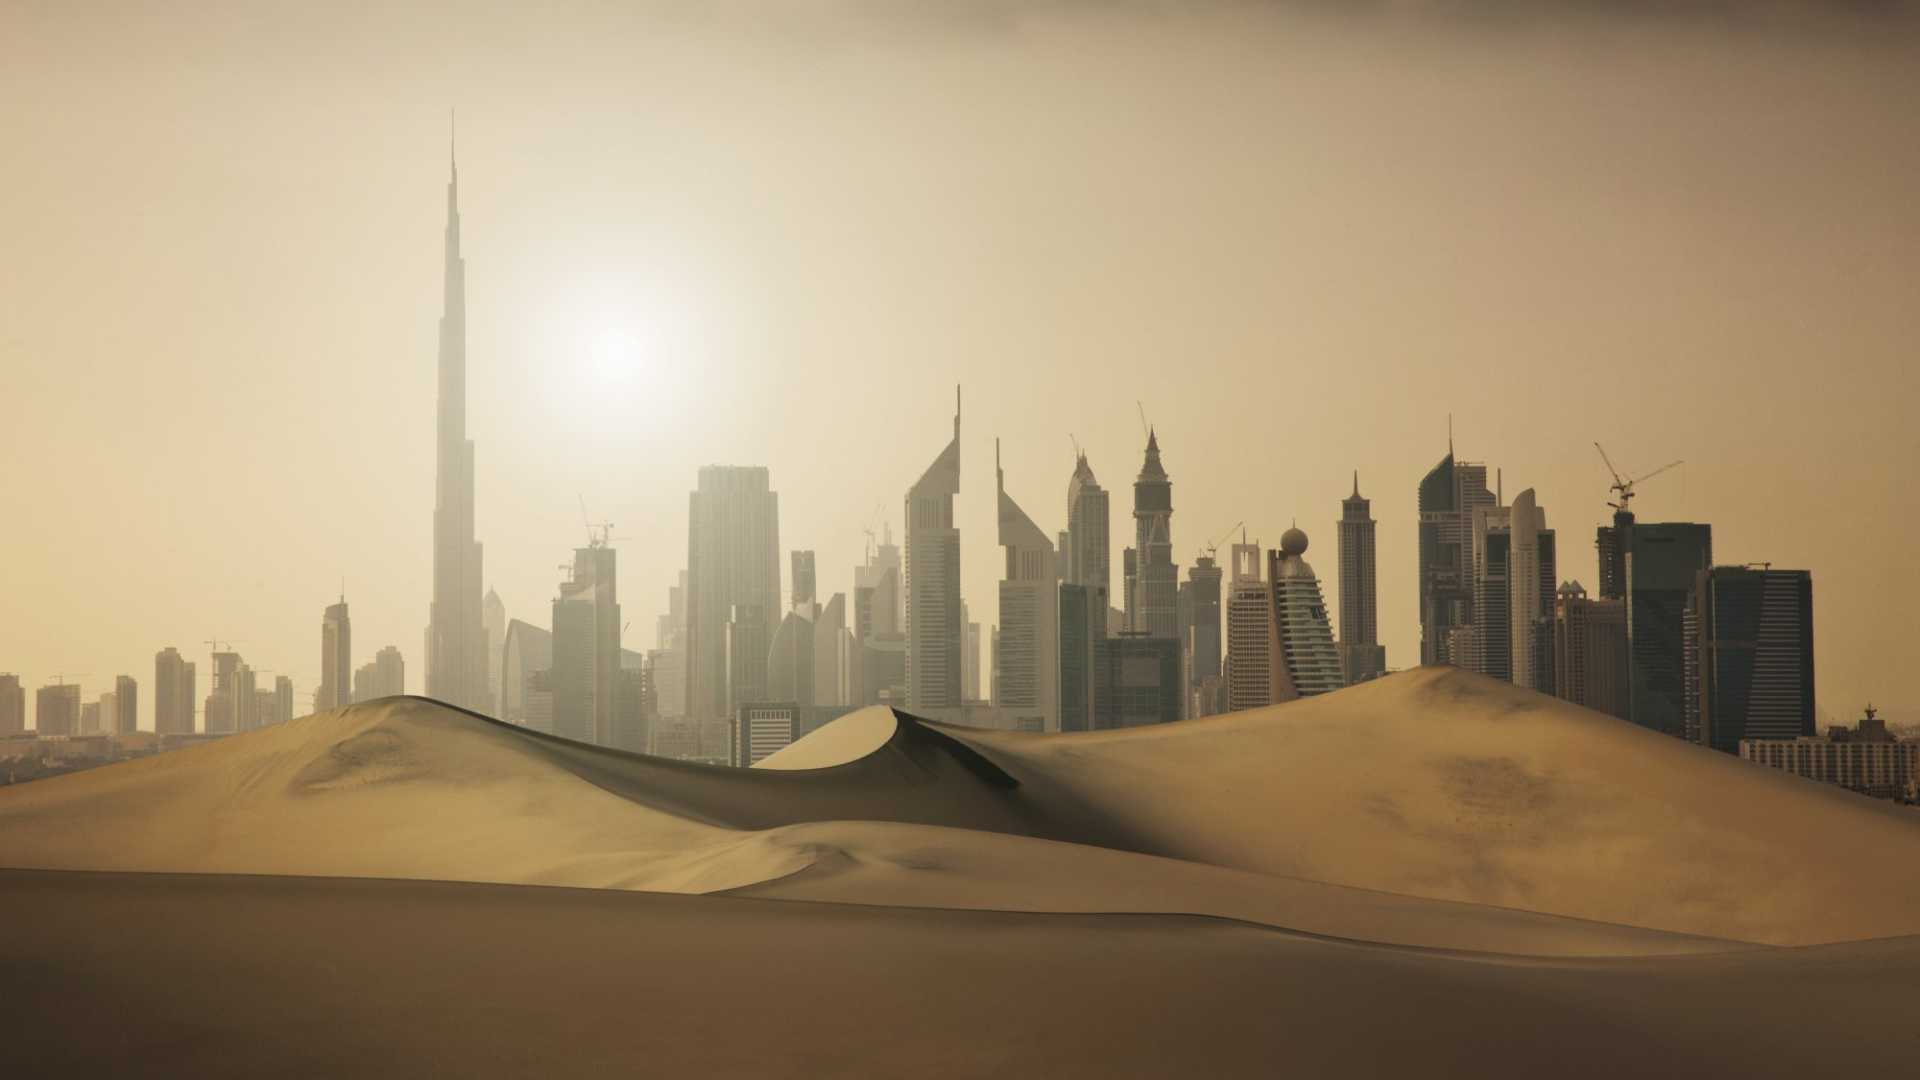 4 Things to Know About Starting Up in Dubai